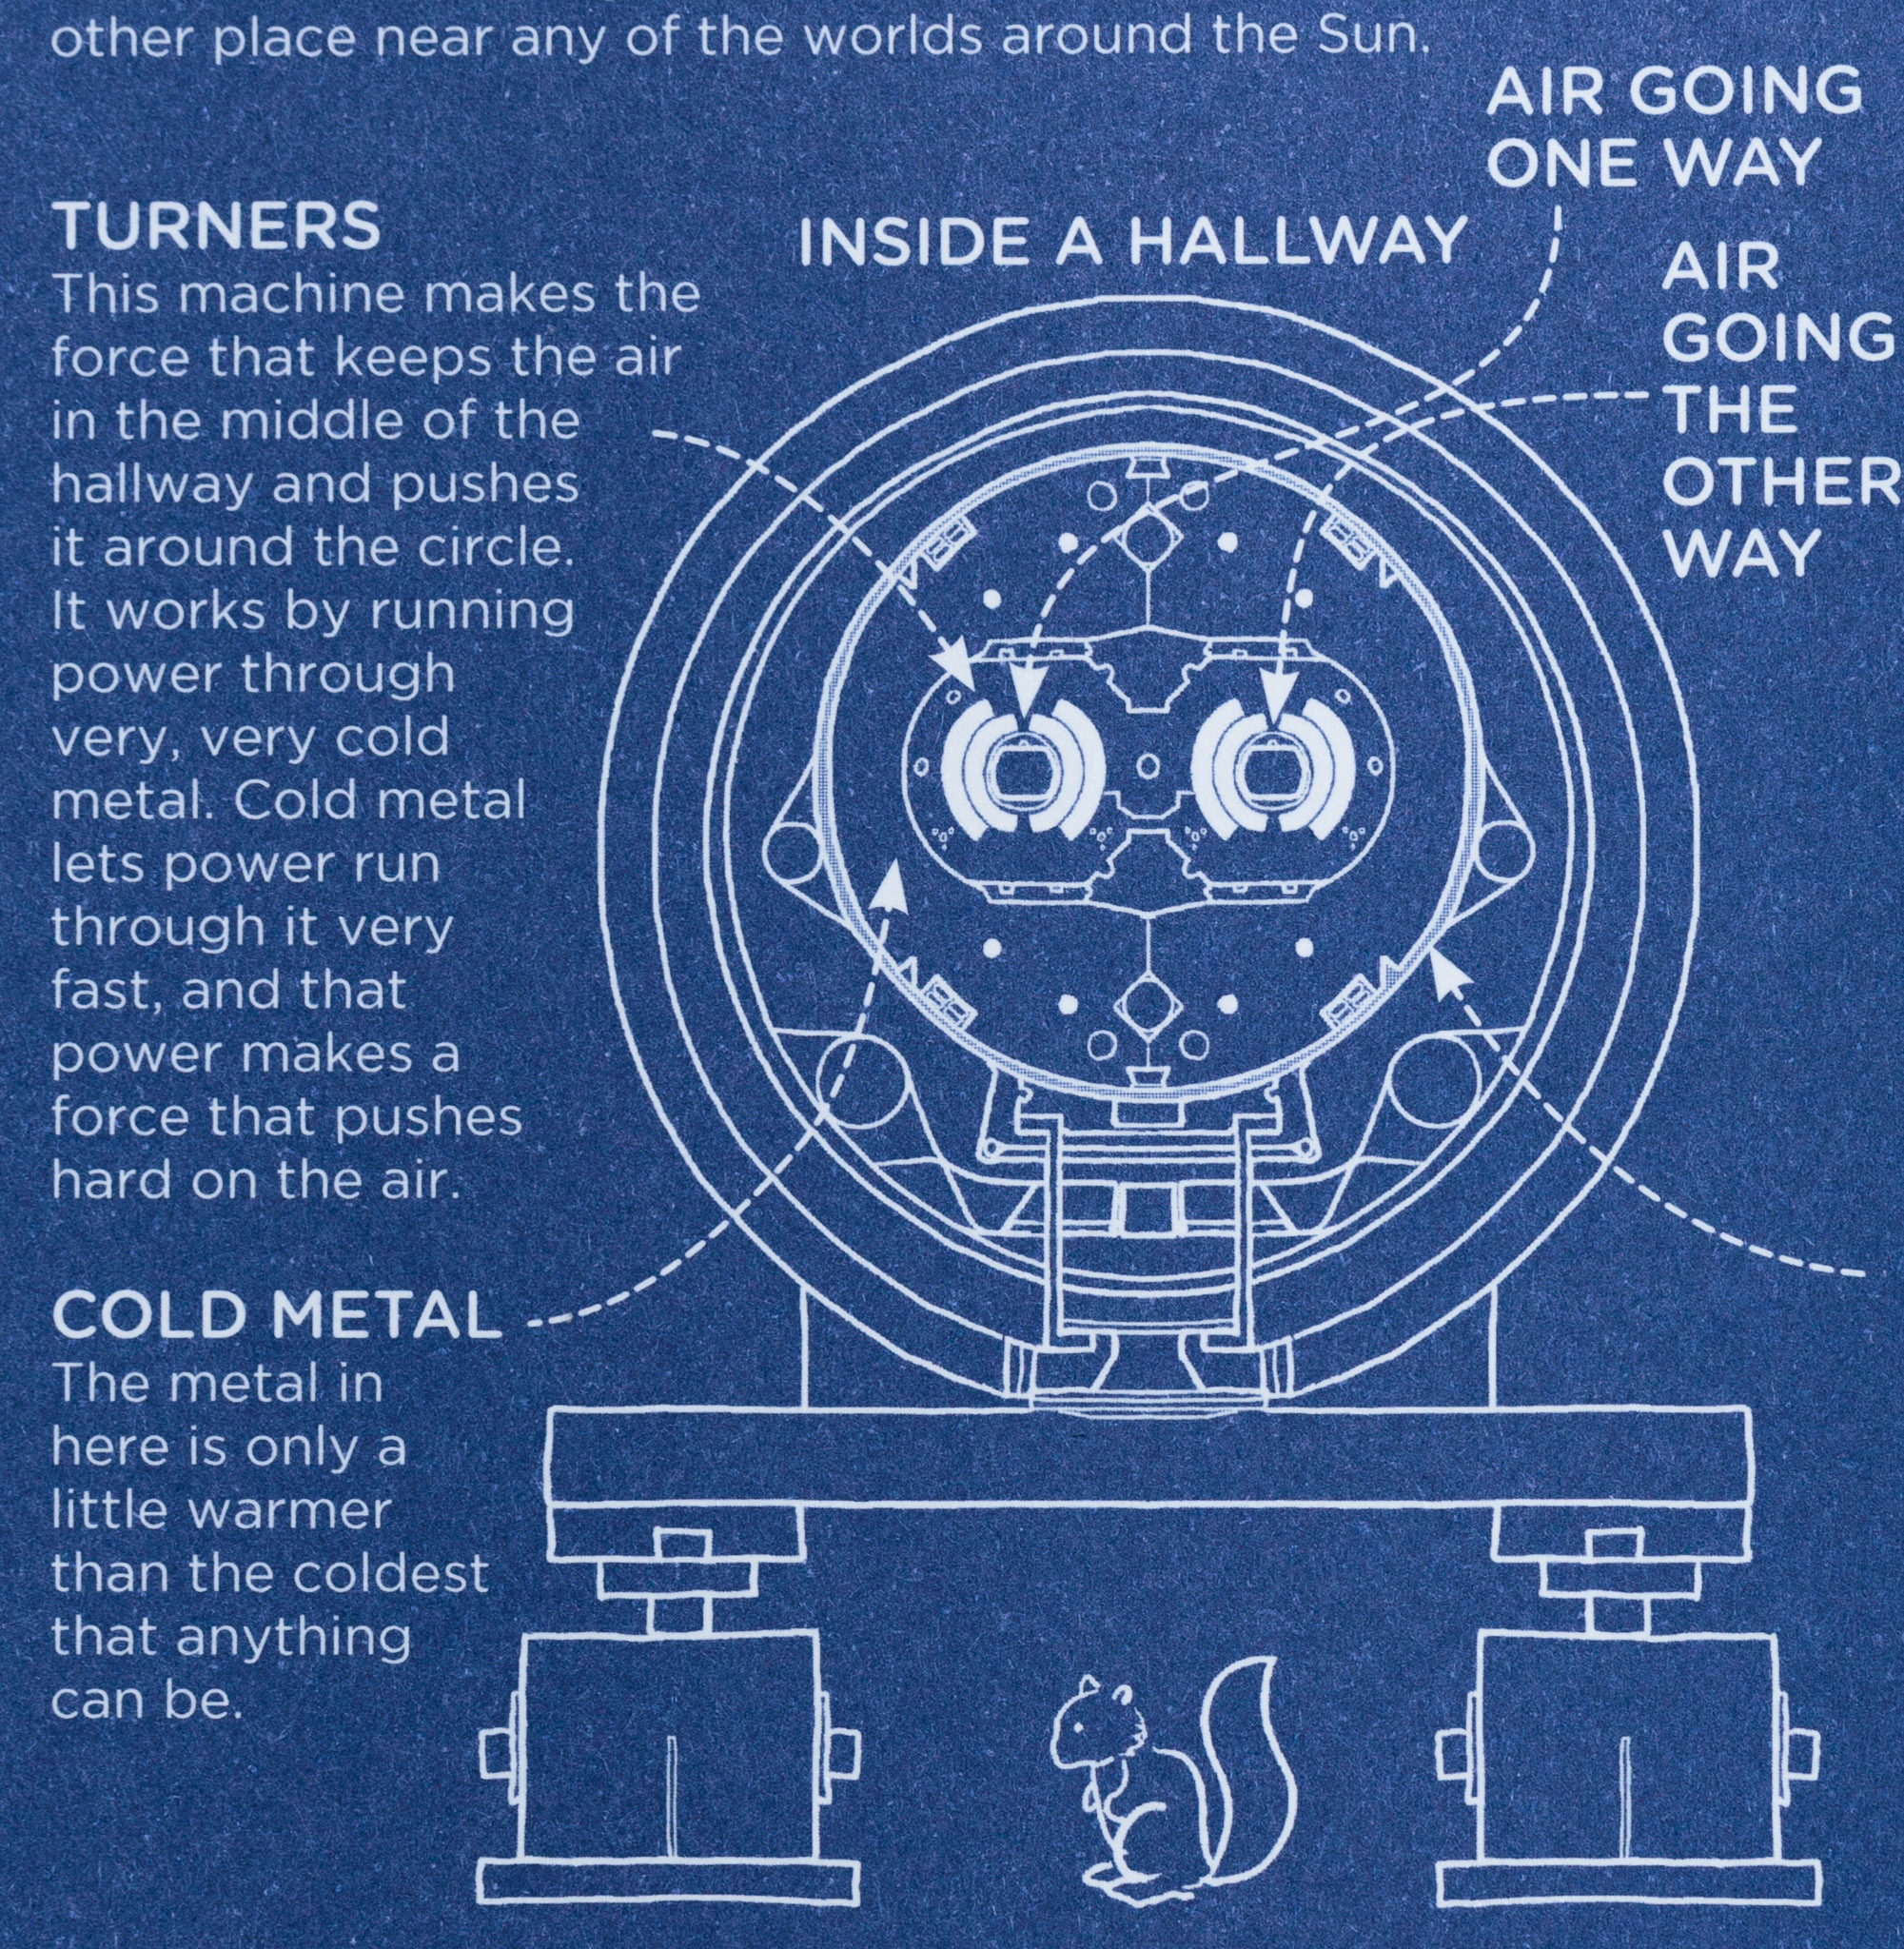 """Randall Munroe calls the Large Hadron Collider, a particle accelerator that smashes protons into each other, a """"big tiny thing hitter. This is a cross section of the particle accelerator."""